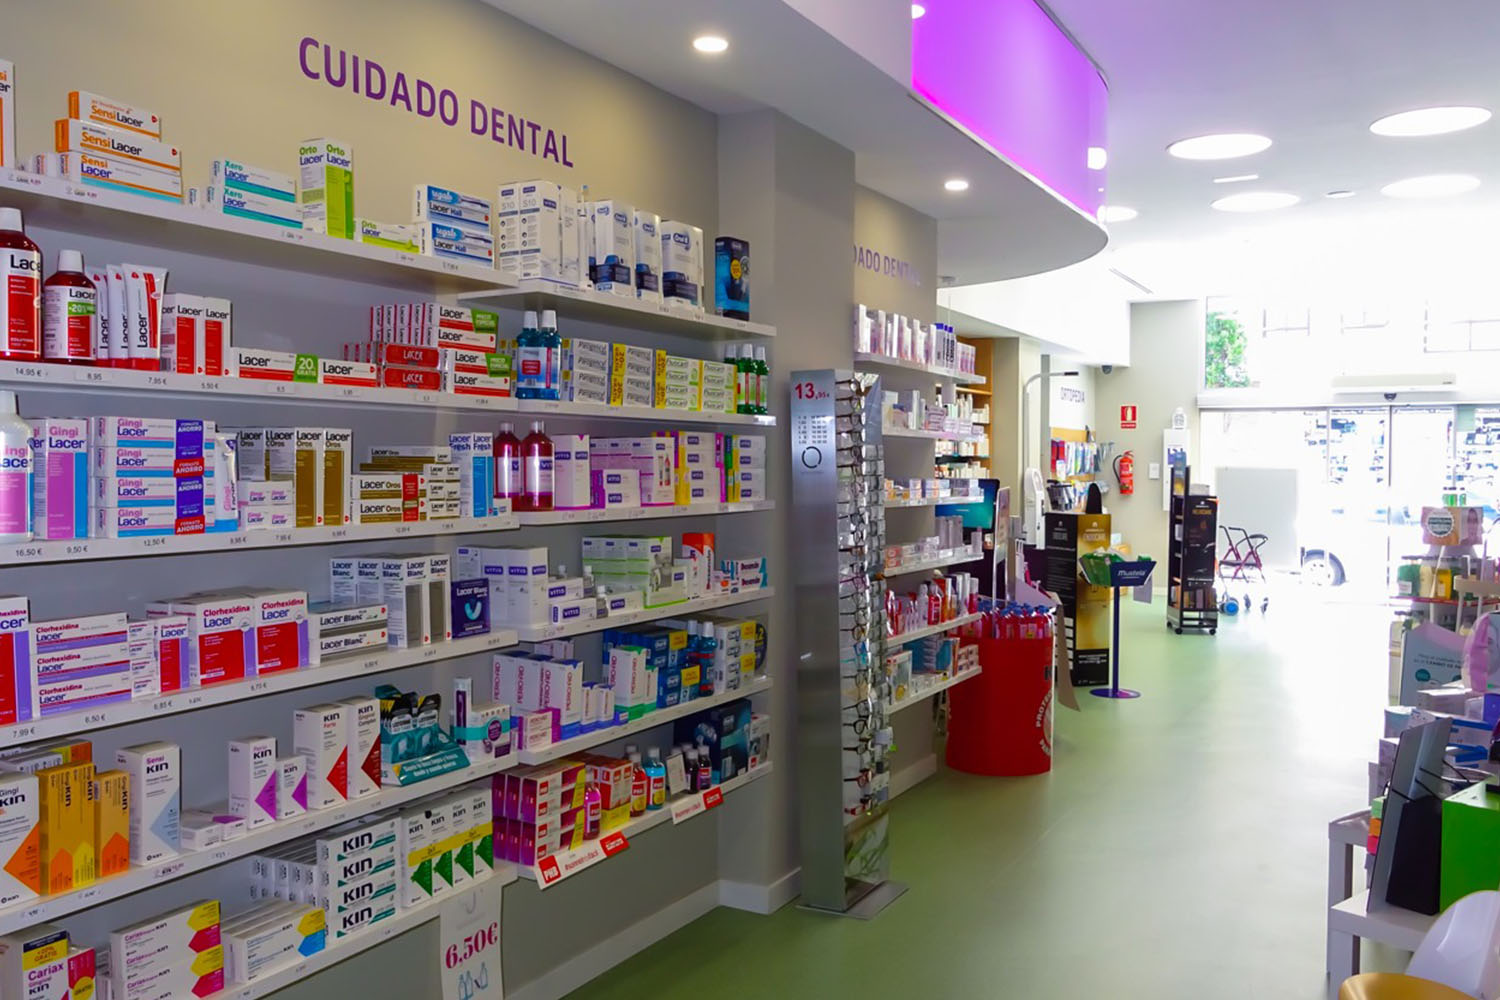 farmacia-beatriz-santamaria-alonso-1-6